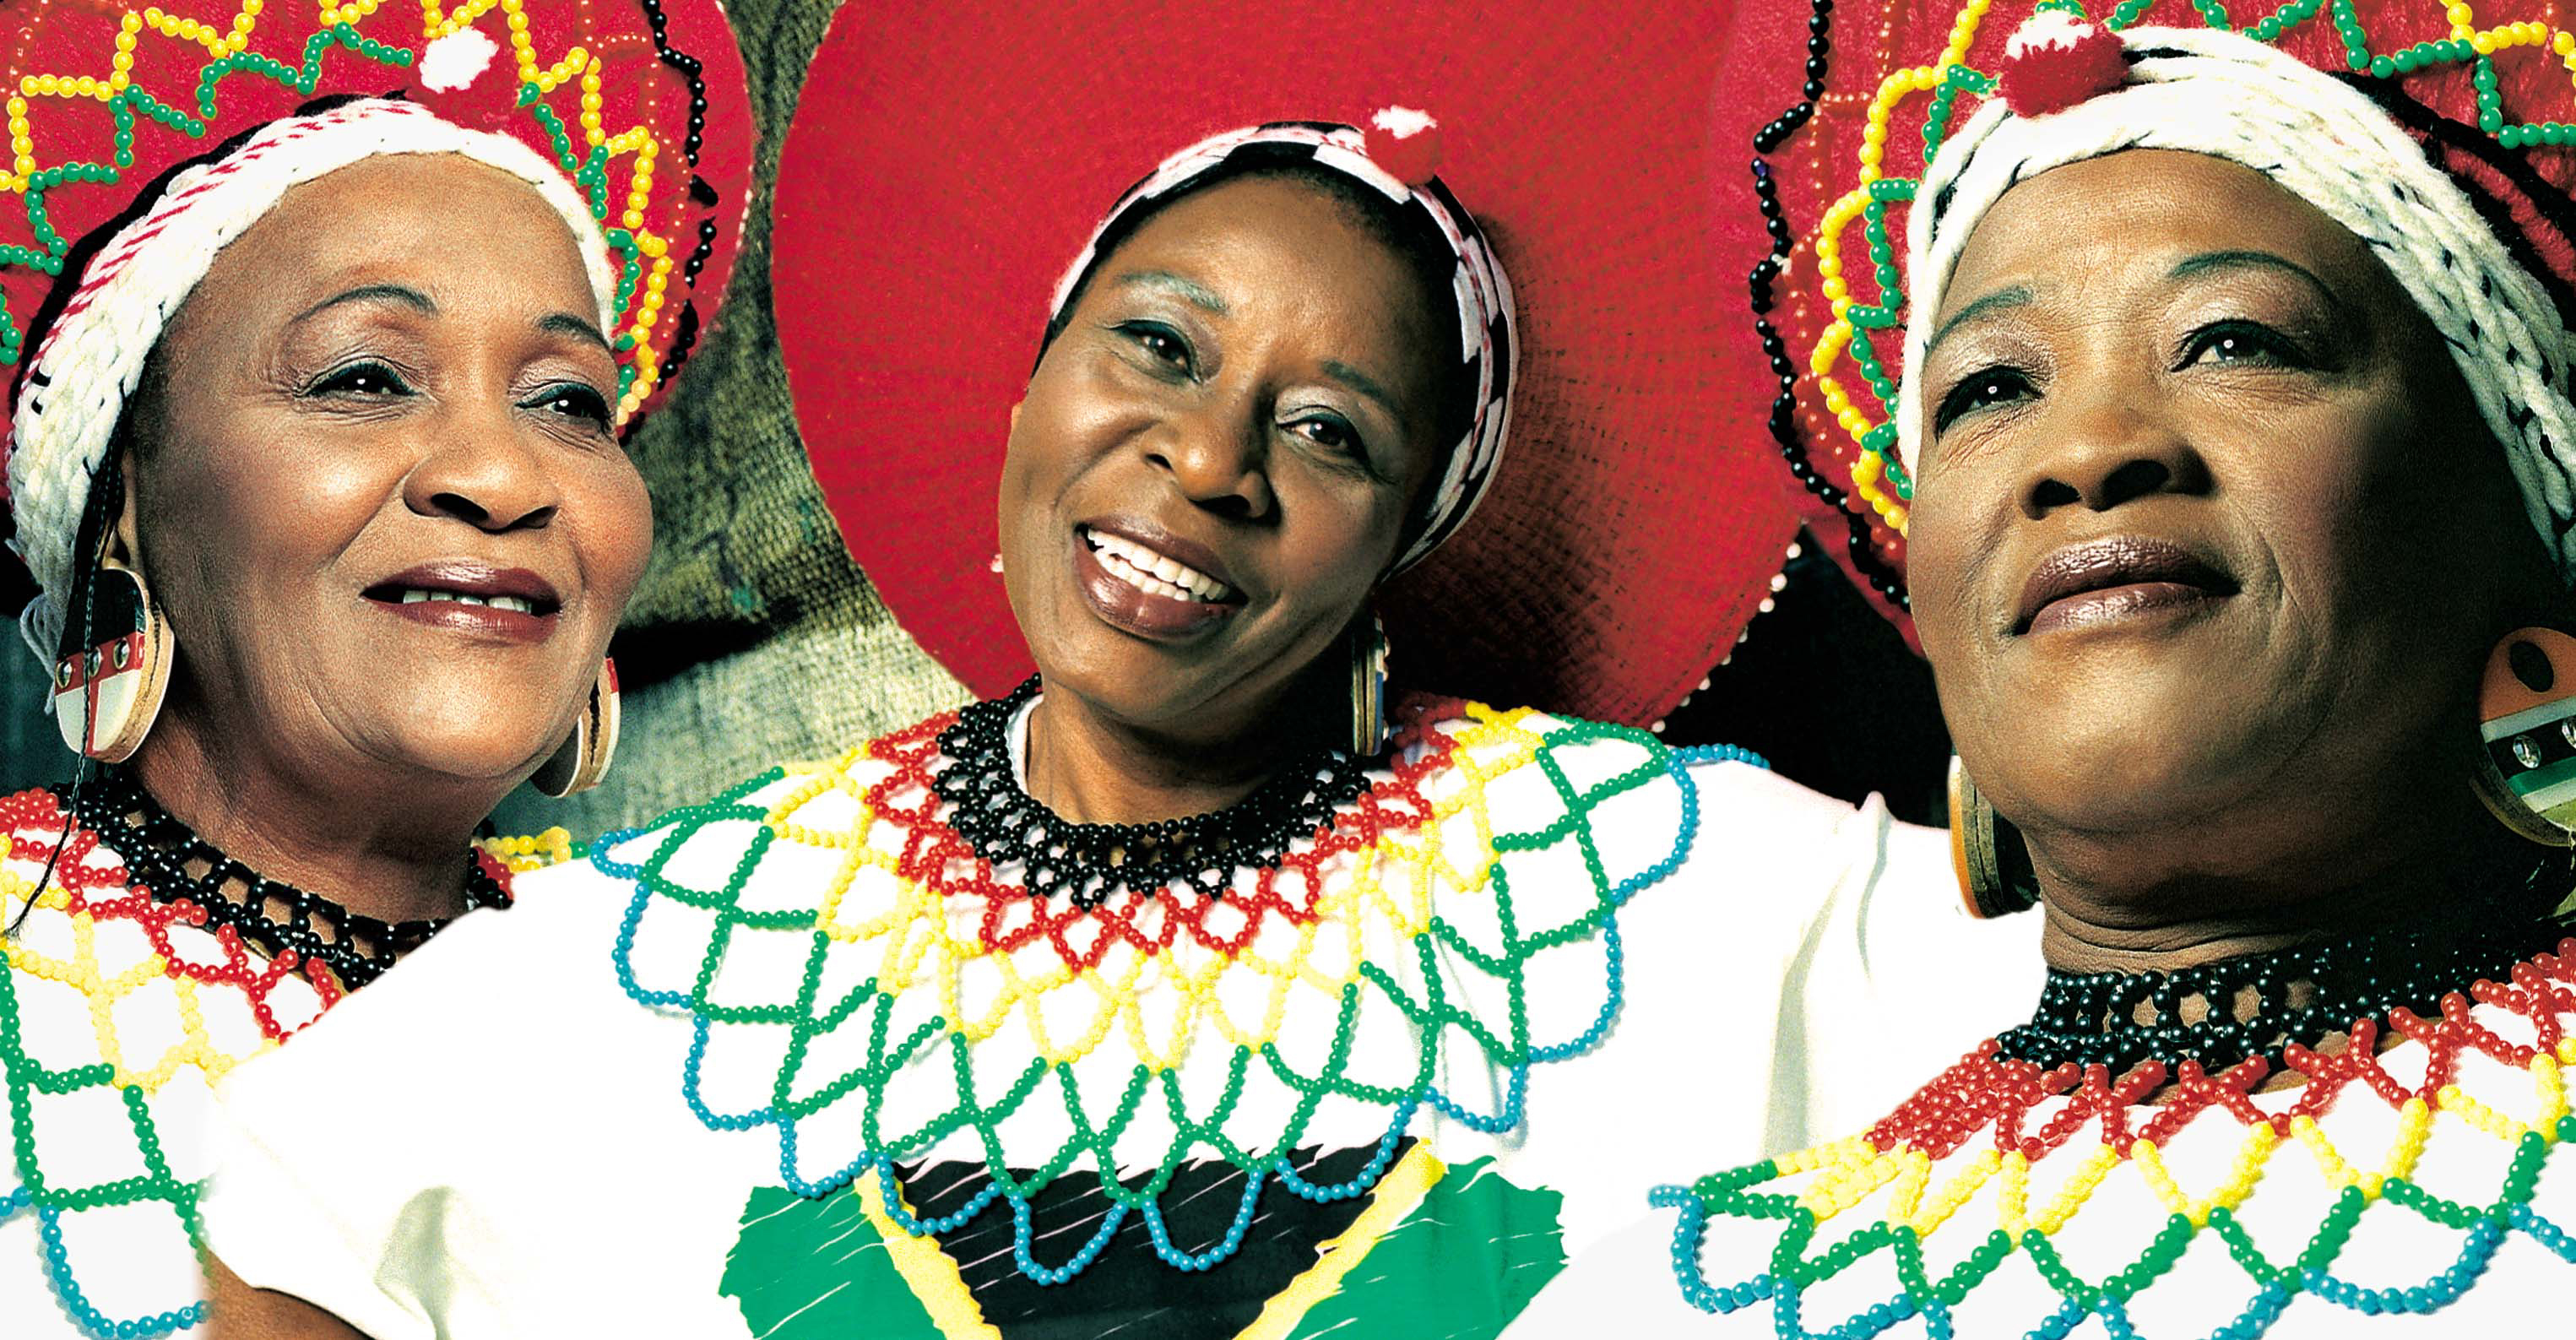 The Mahotella Queens - copyright Griot GmbH